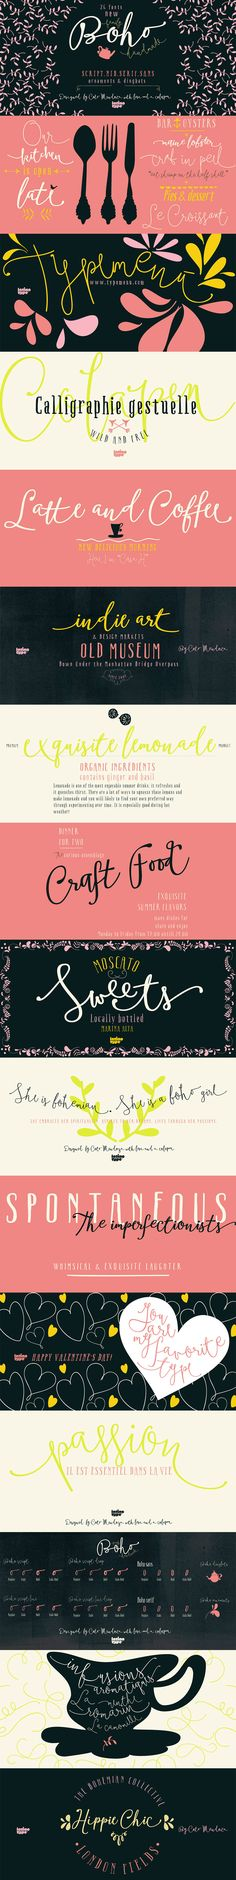 Boho Font by Latino Type | 22 Professional & Artistic Fonts Apr 2015